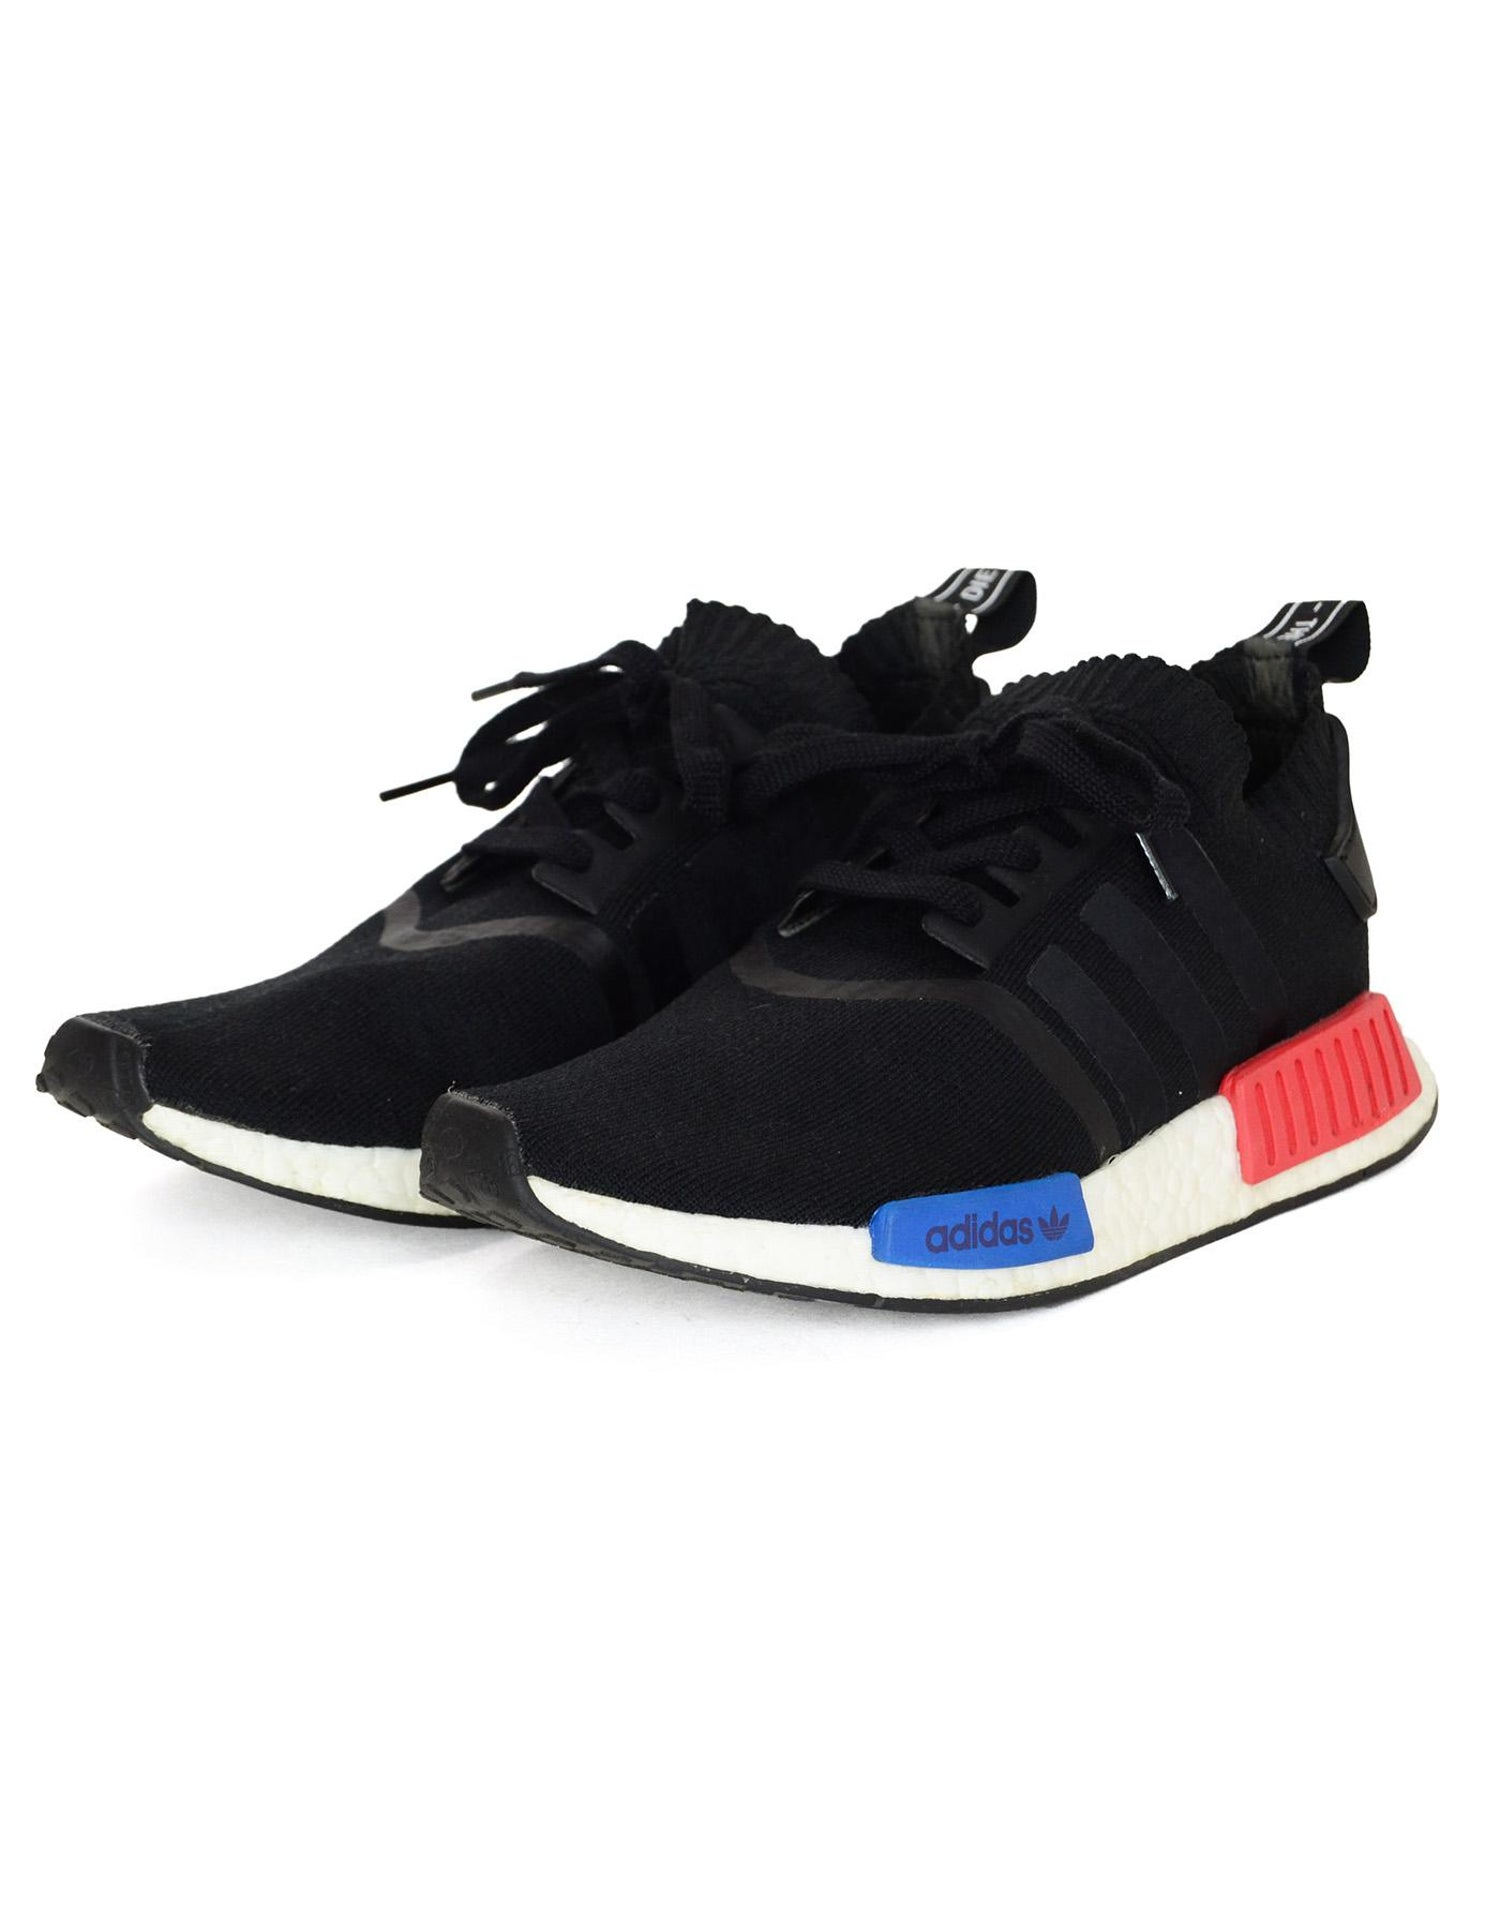 e7c11c266 Adidas Limited Edition Black Red Blue NMD R1 PK OG 2017 Release sz Men s 7  For Sale at 1stdibs